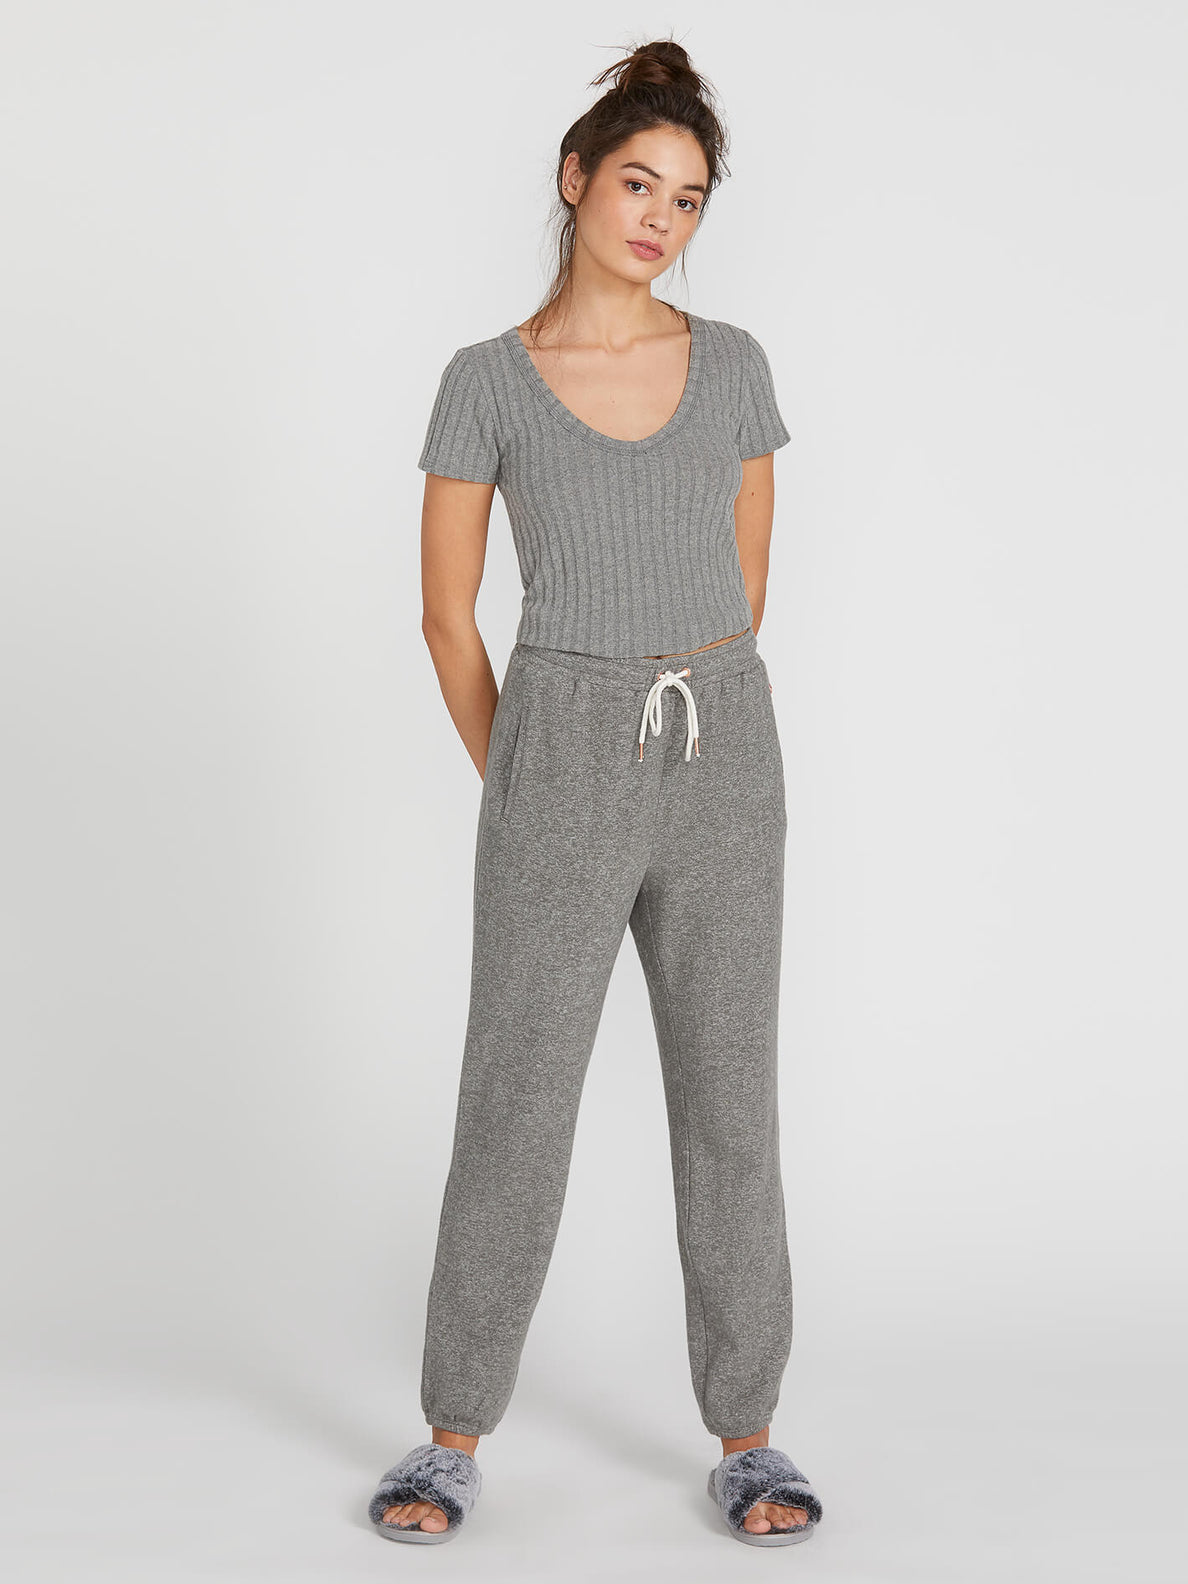 Lived In Lounge Fleece Pants - Charcoal Grey (B1111801_CHR) [F]